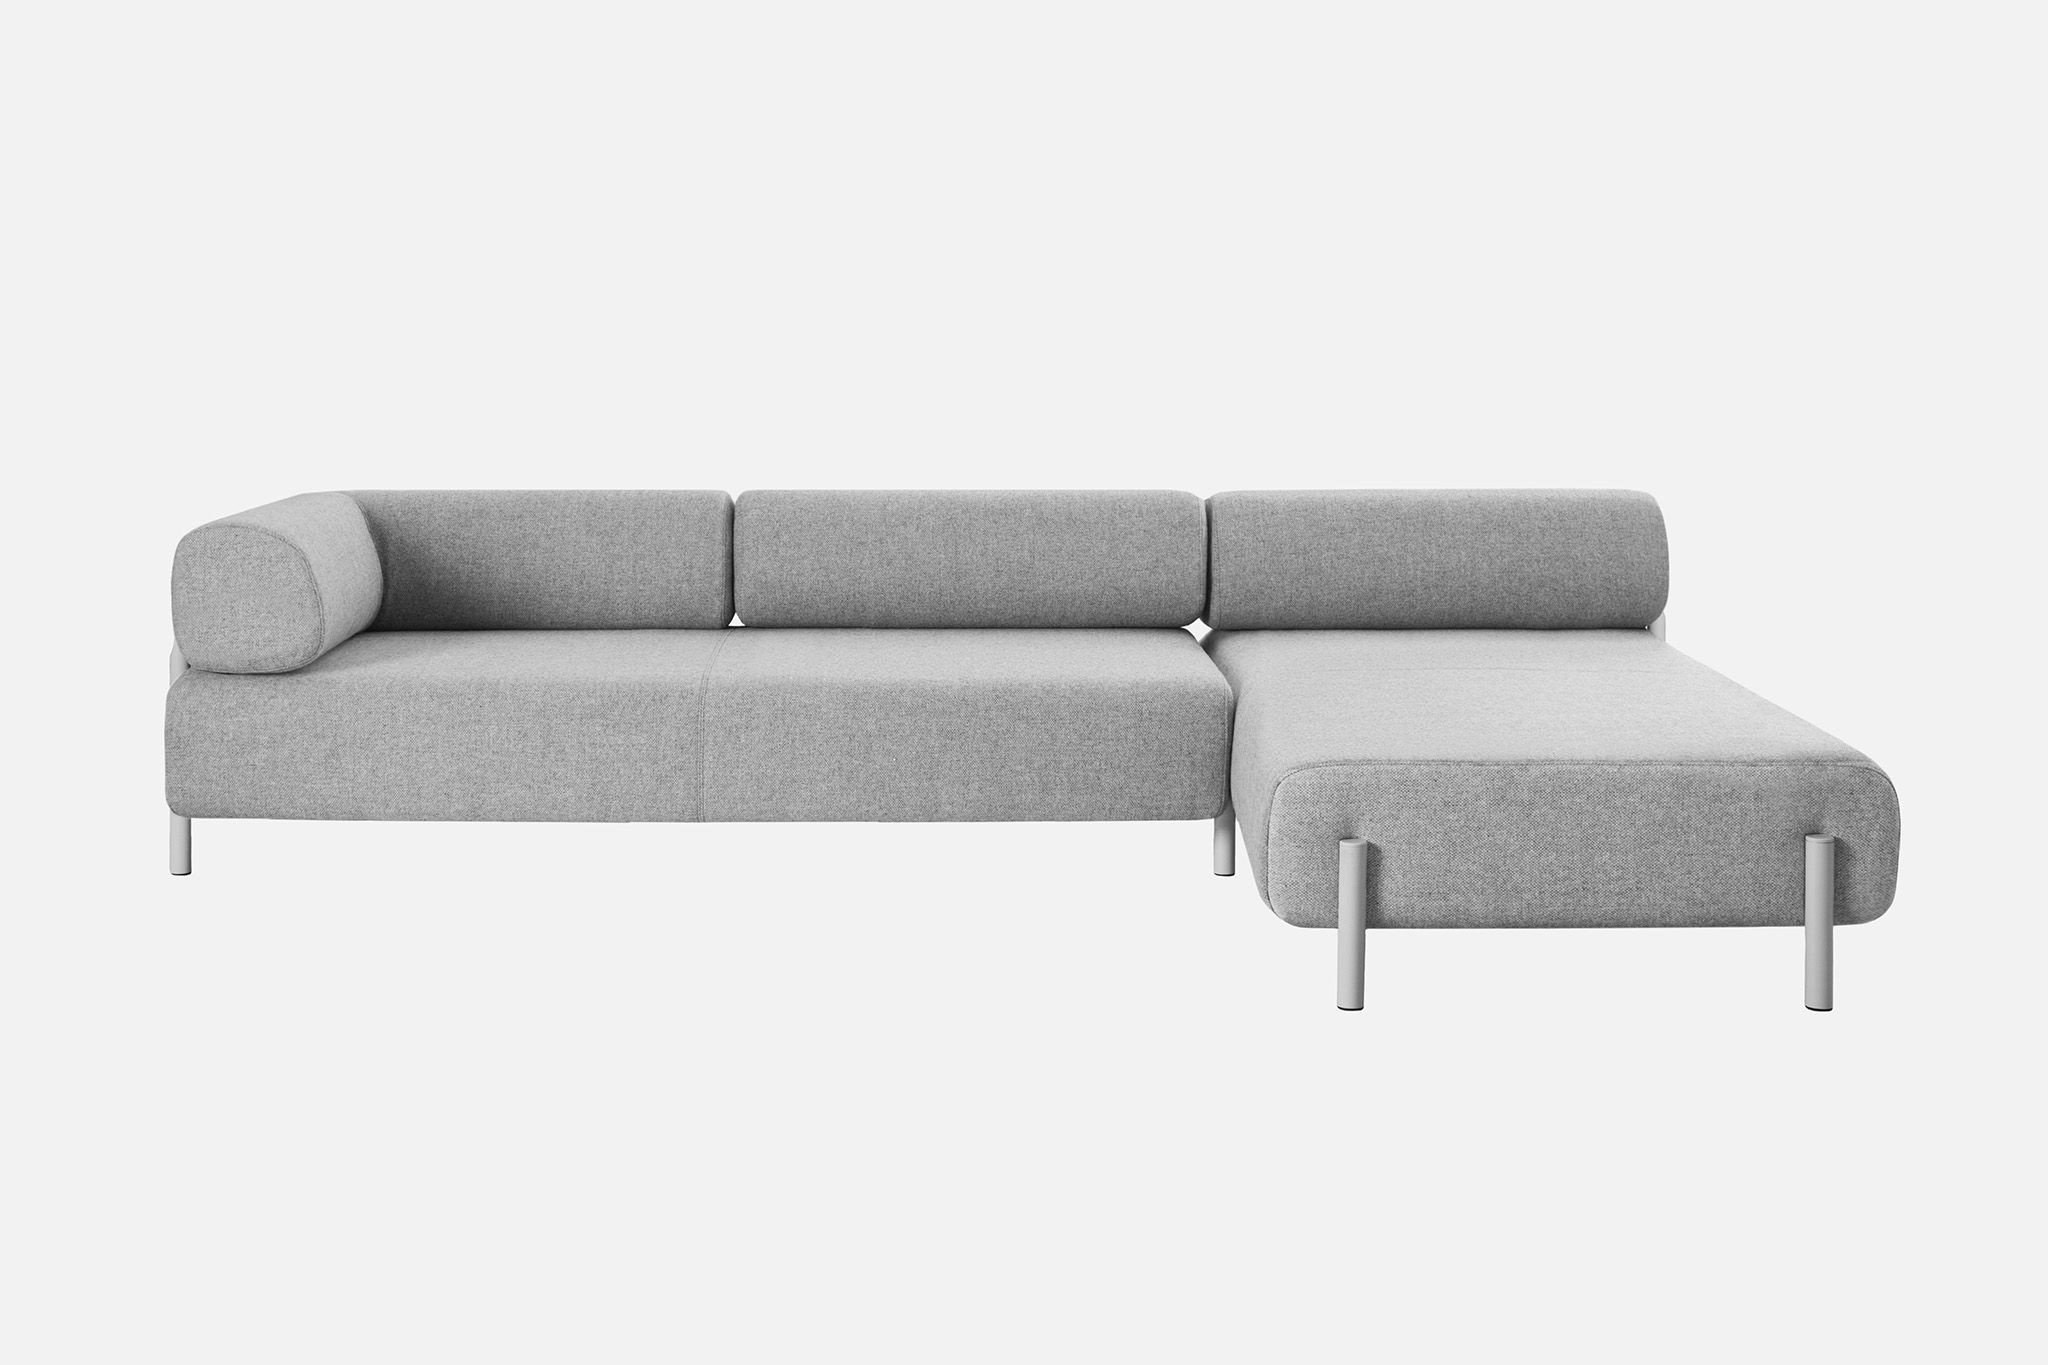 chaise longue corner sofa in soft wool